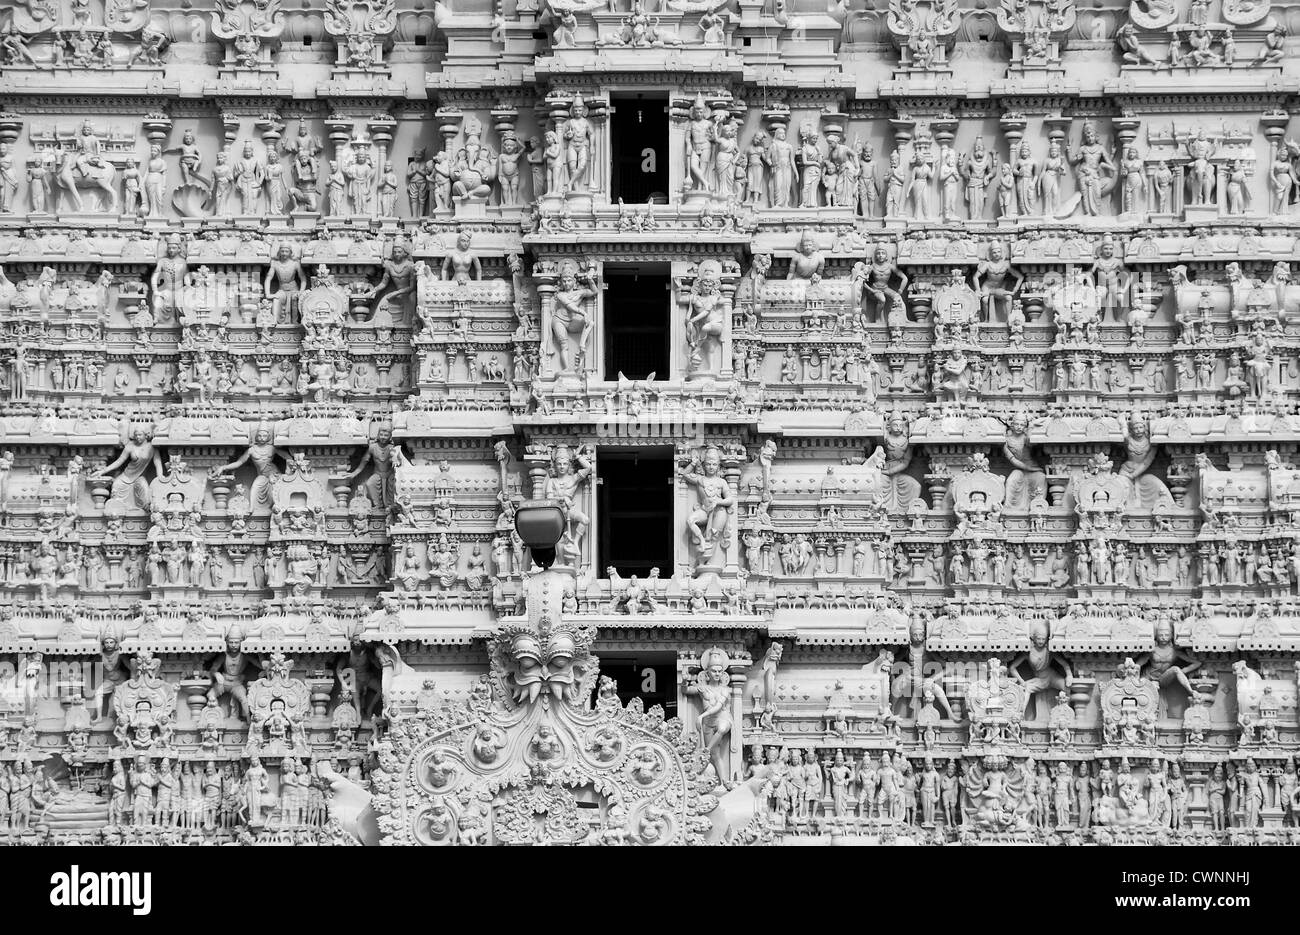 Temple sculpture and architecture - Stock Image